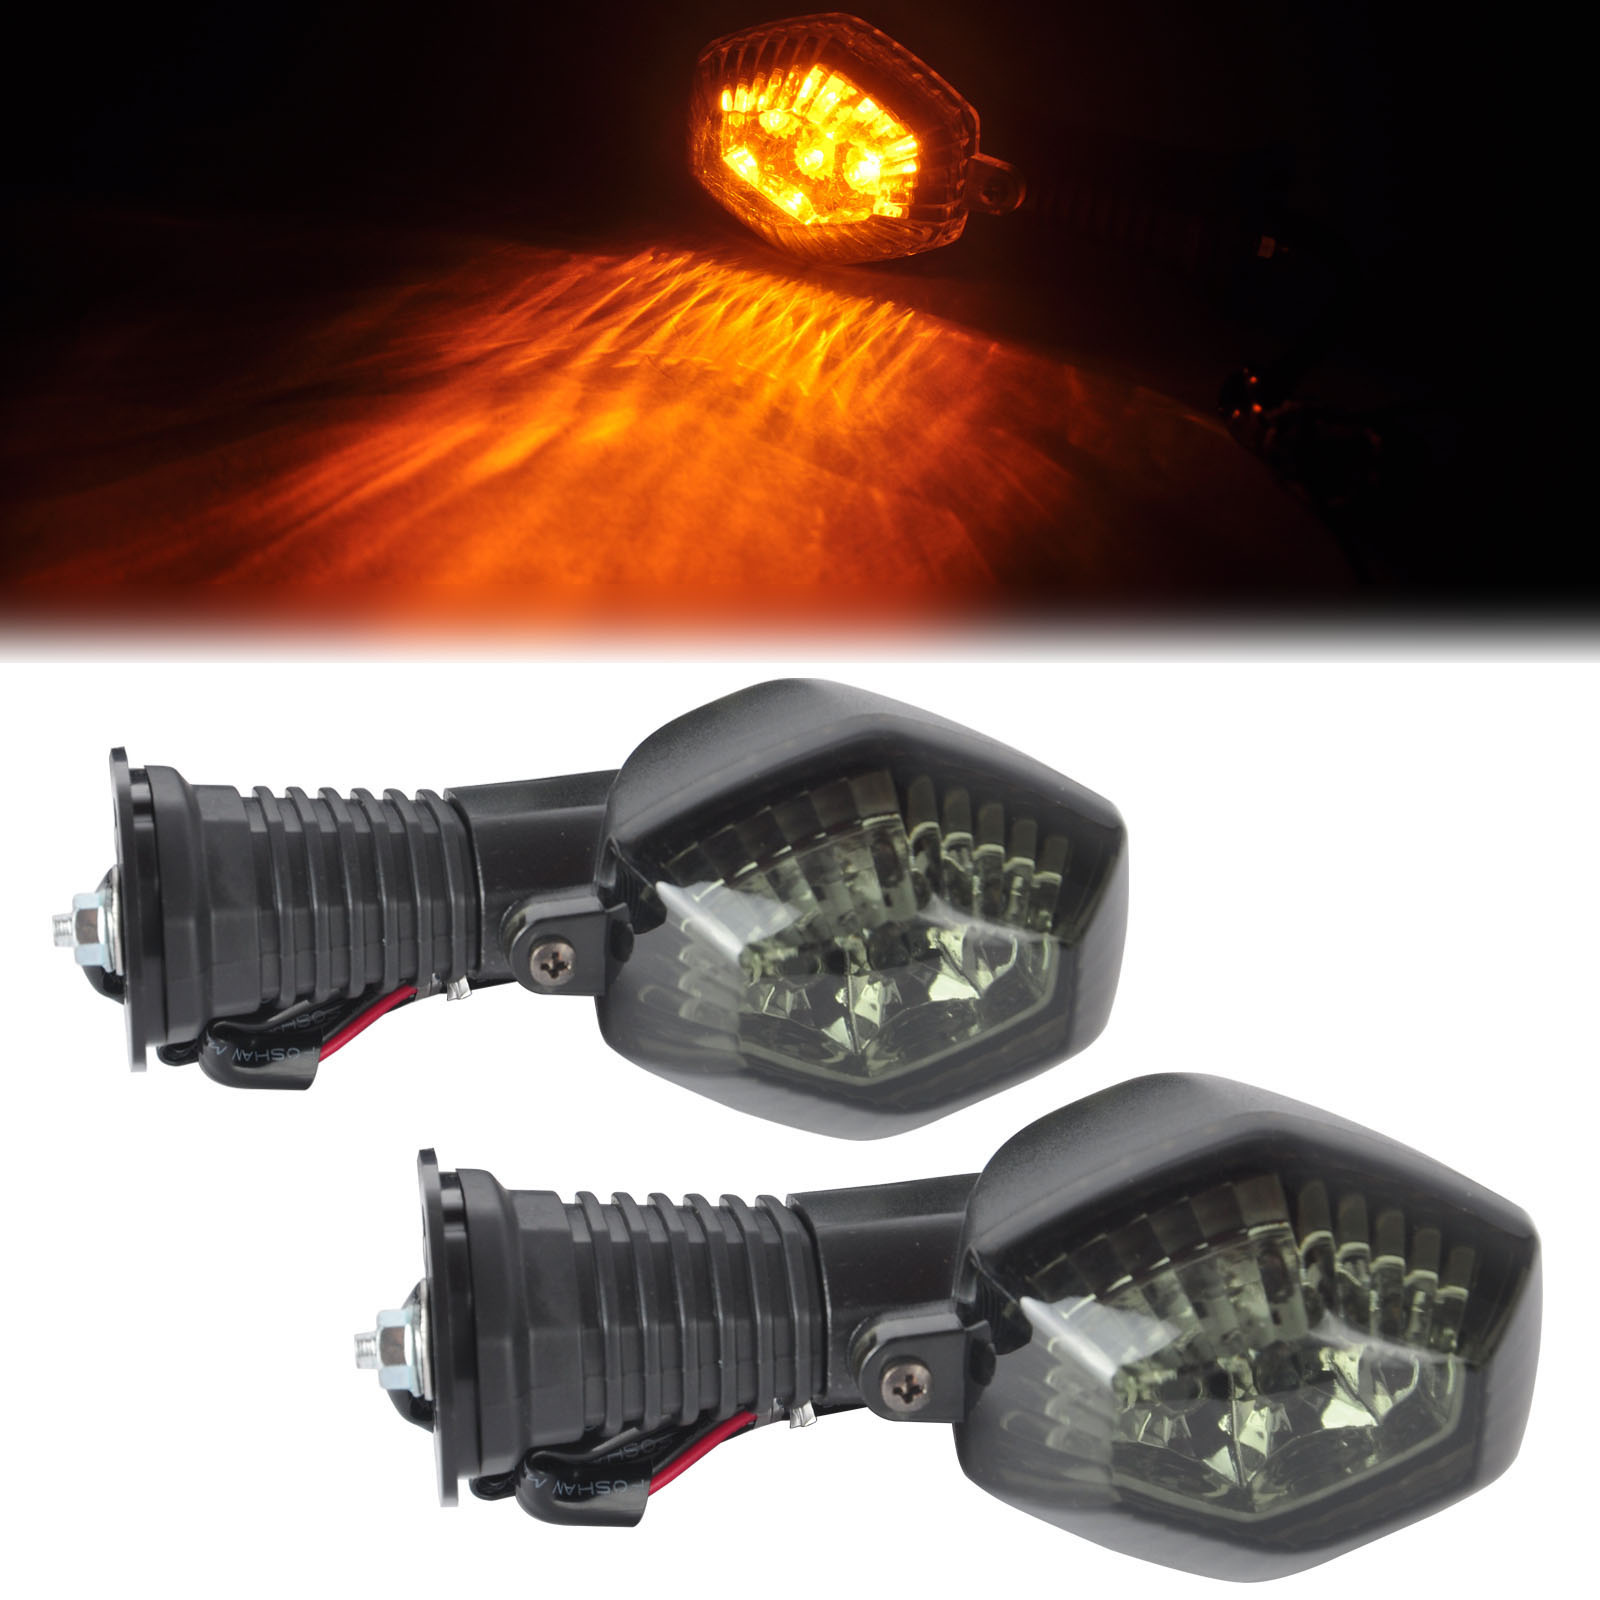 Mayitr 1 Pair Motorcycle Smoke Lens LED Rear Turn Signal Light Amber Lamp for Suzuki DL650 DL1000 V-Strom GSX 650F 1250 FA